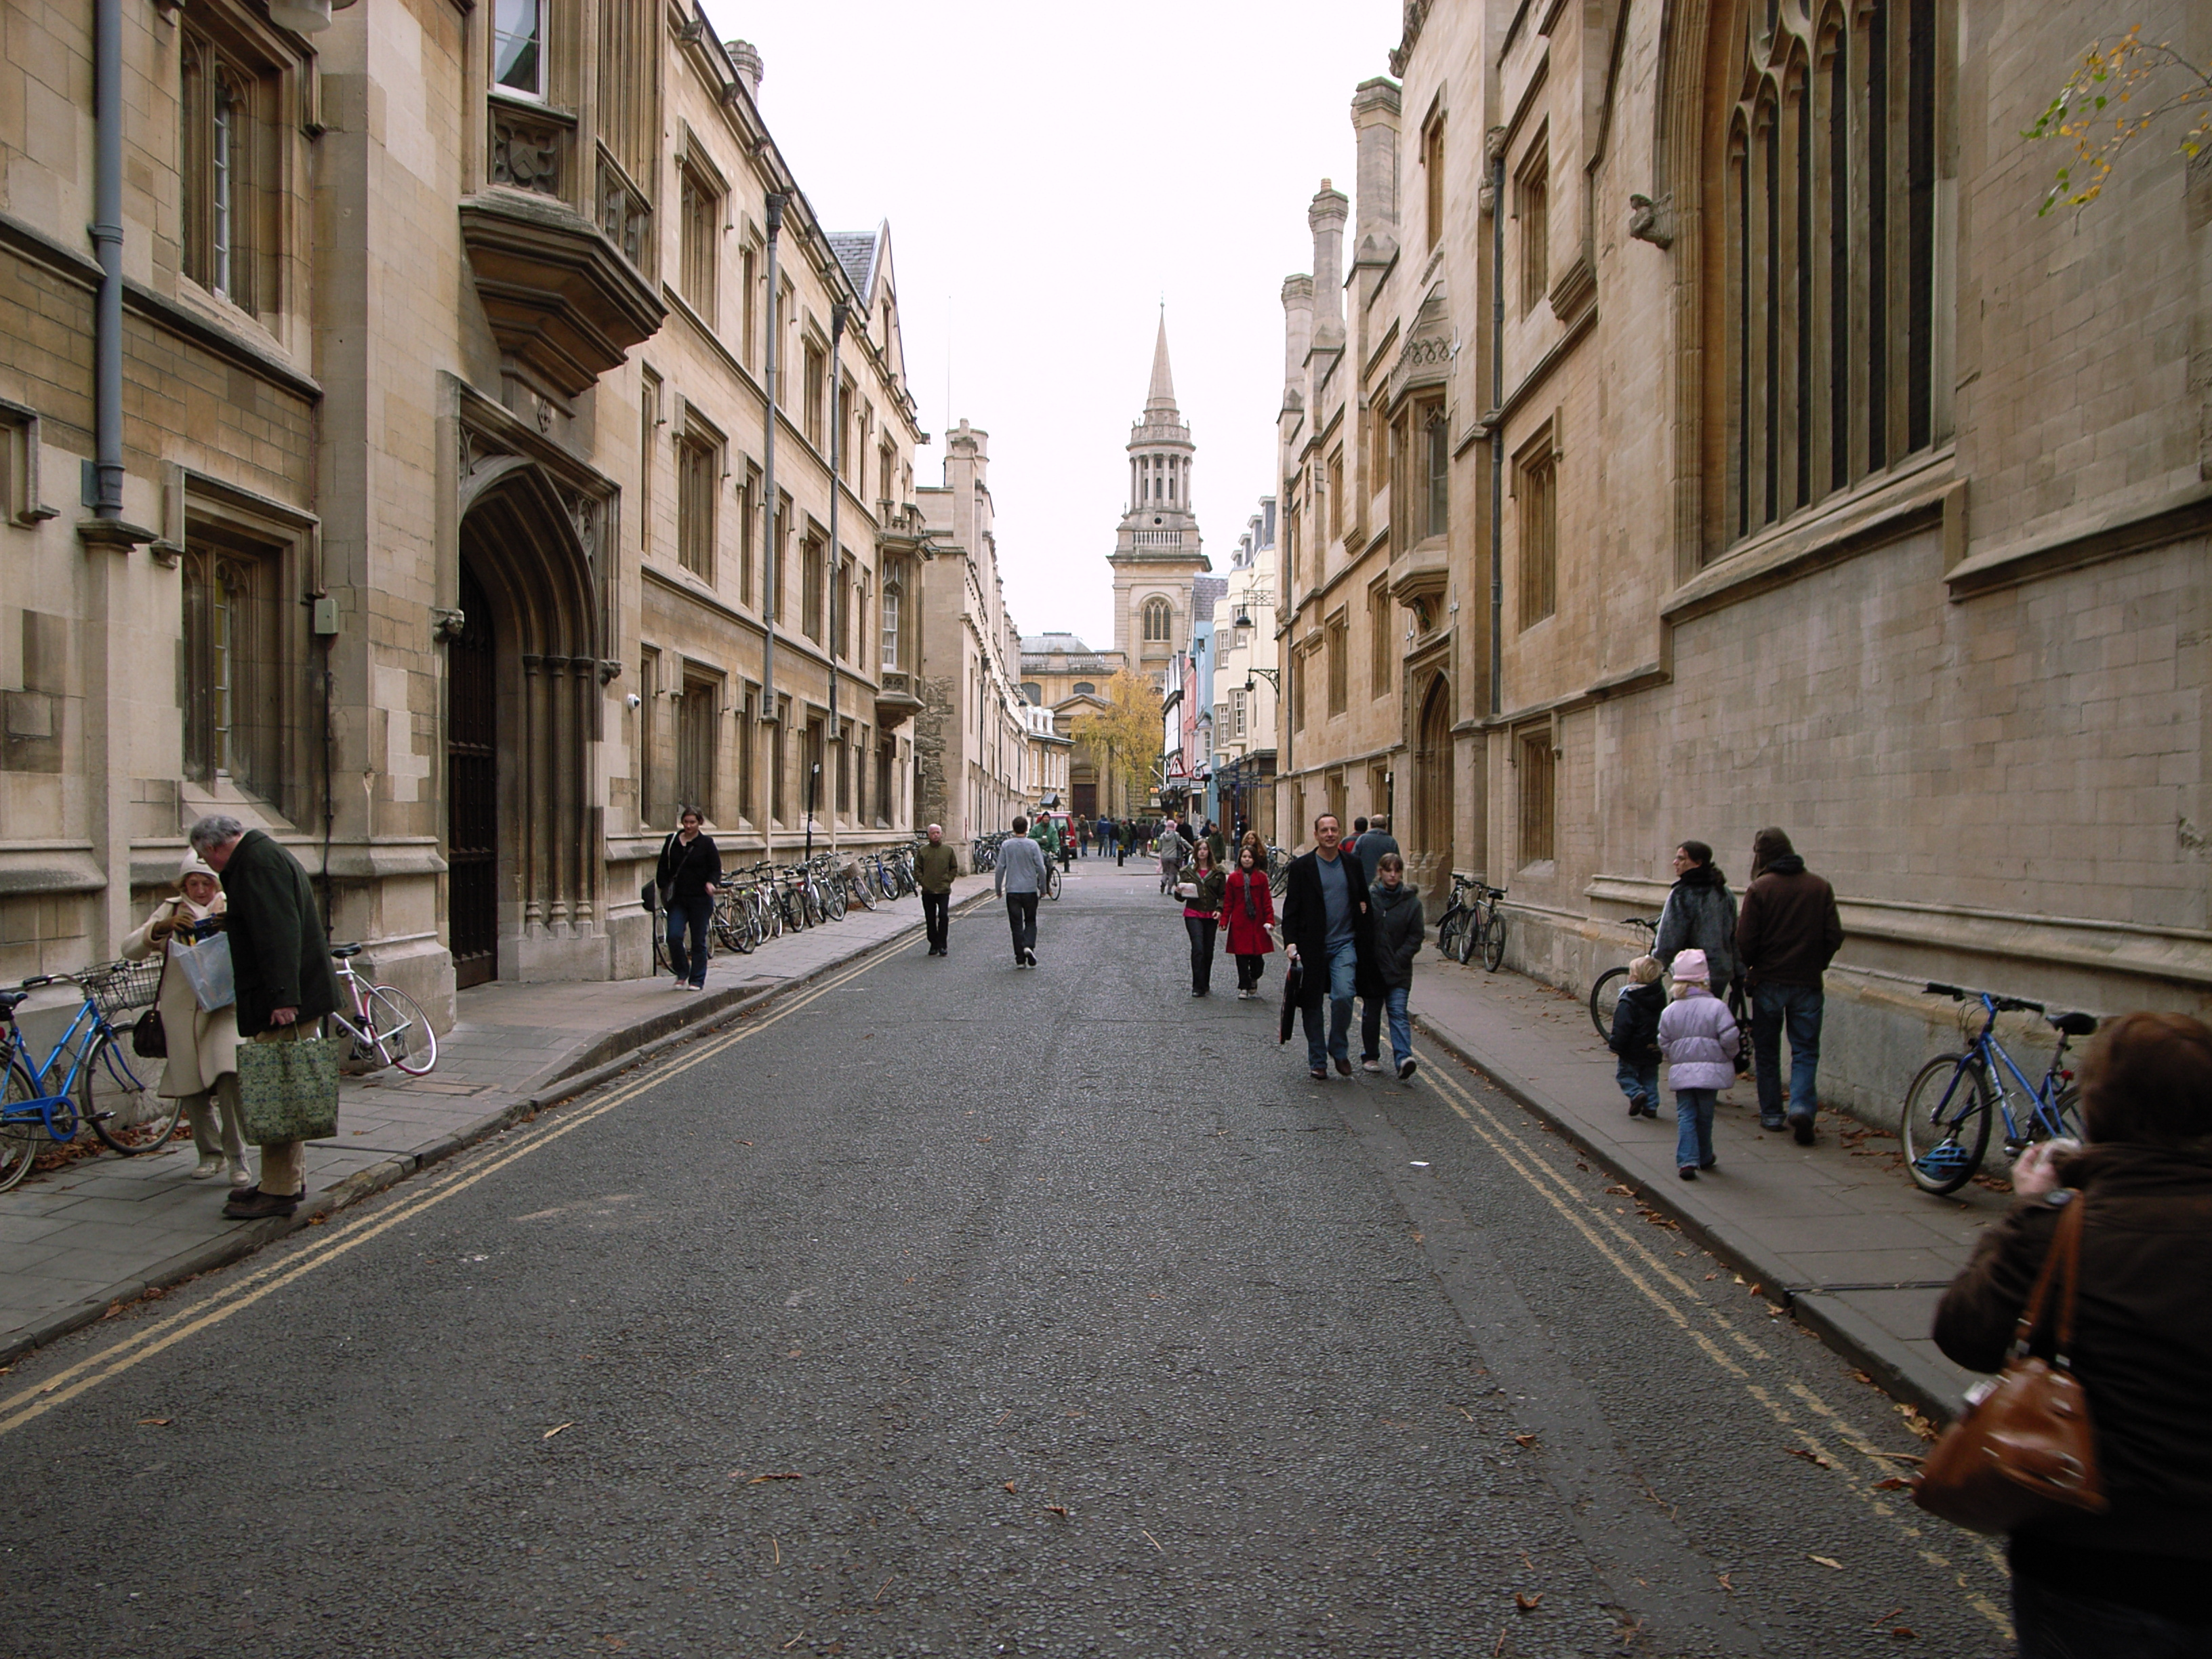 File:Turl Street, Oxford.jpg - Wikipedia